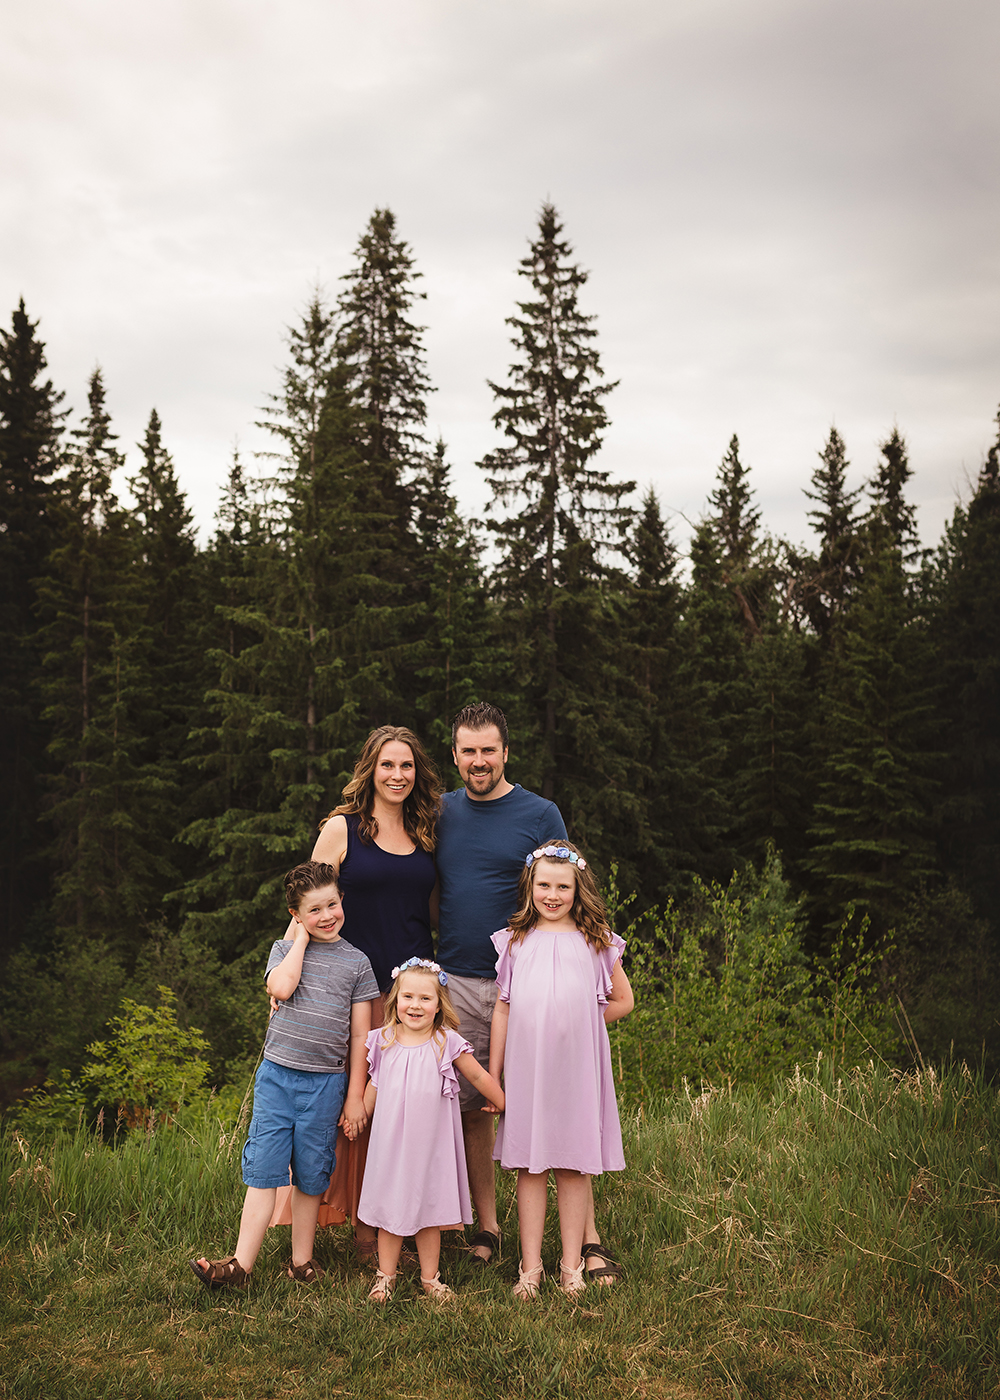 Edmonton Family Photographer_Voss Family Sneak Peek 1.jpg